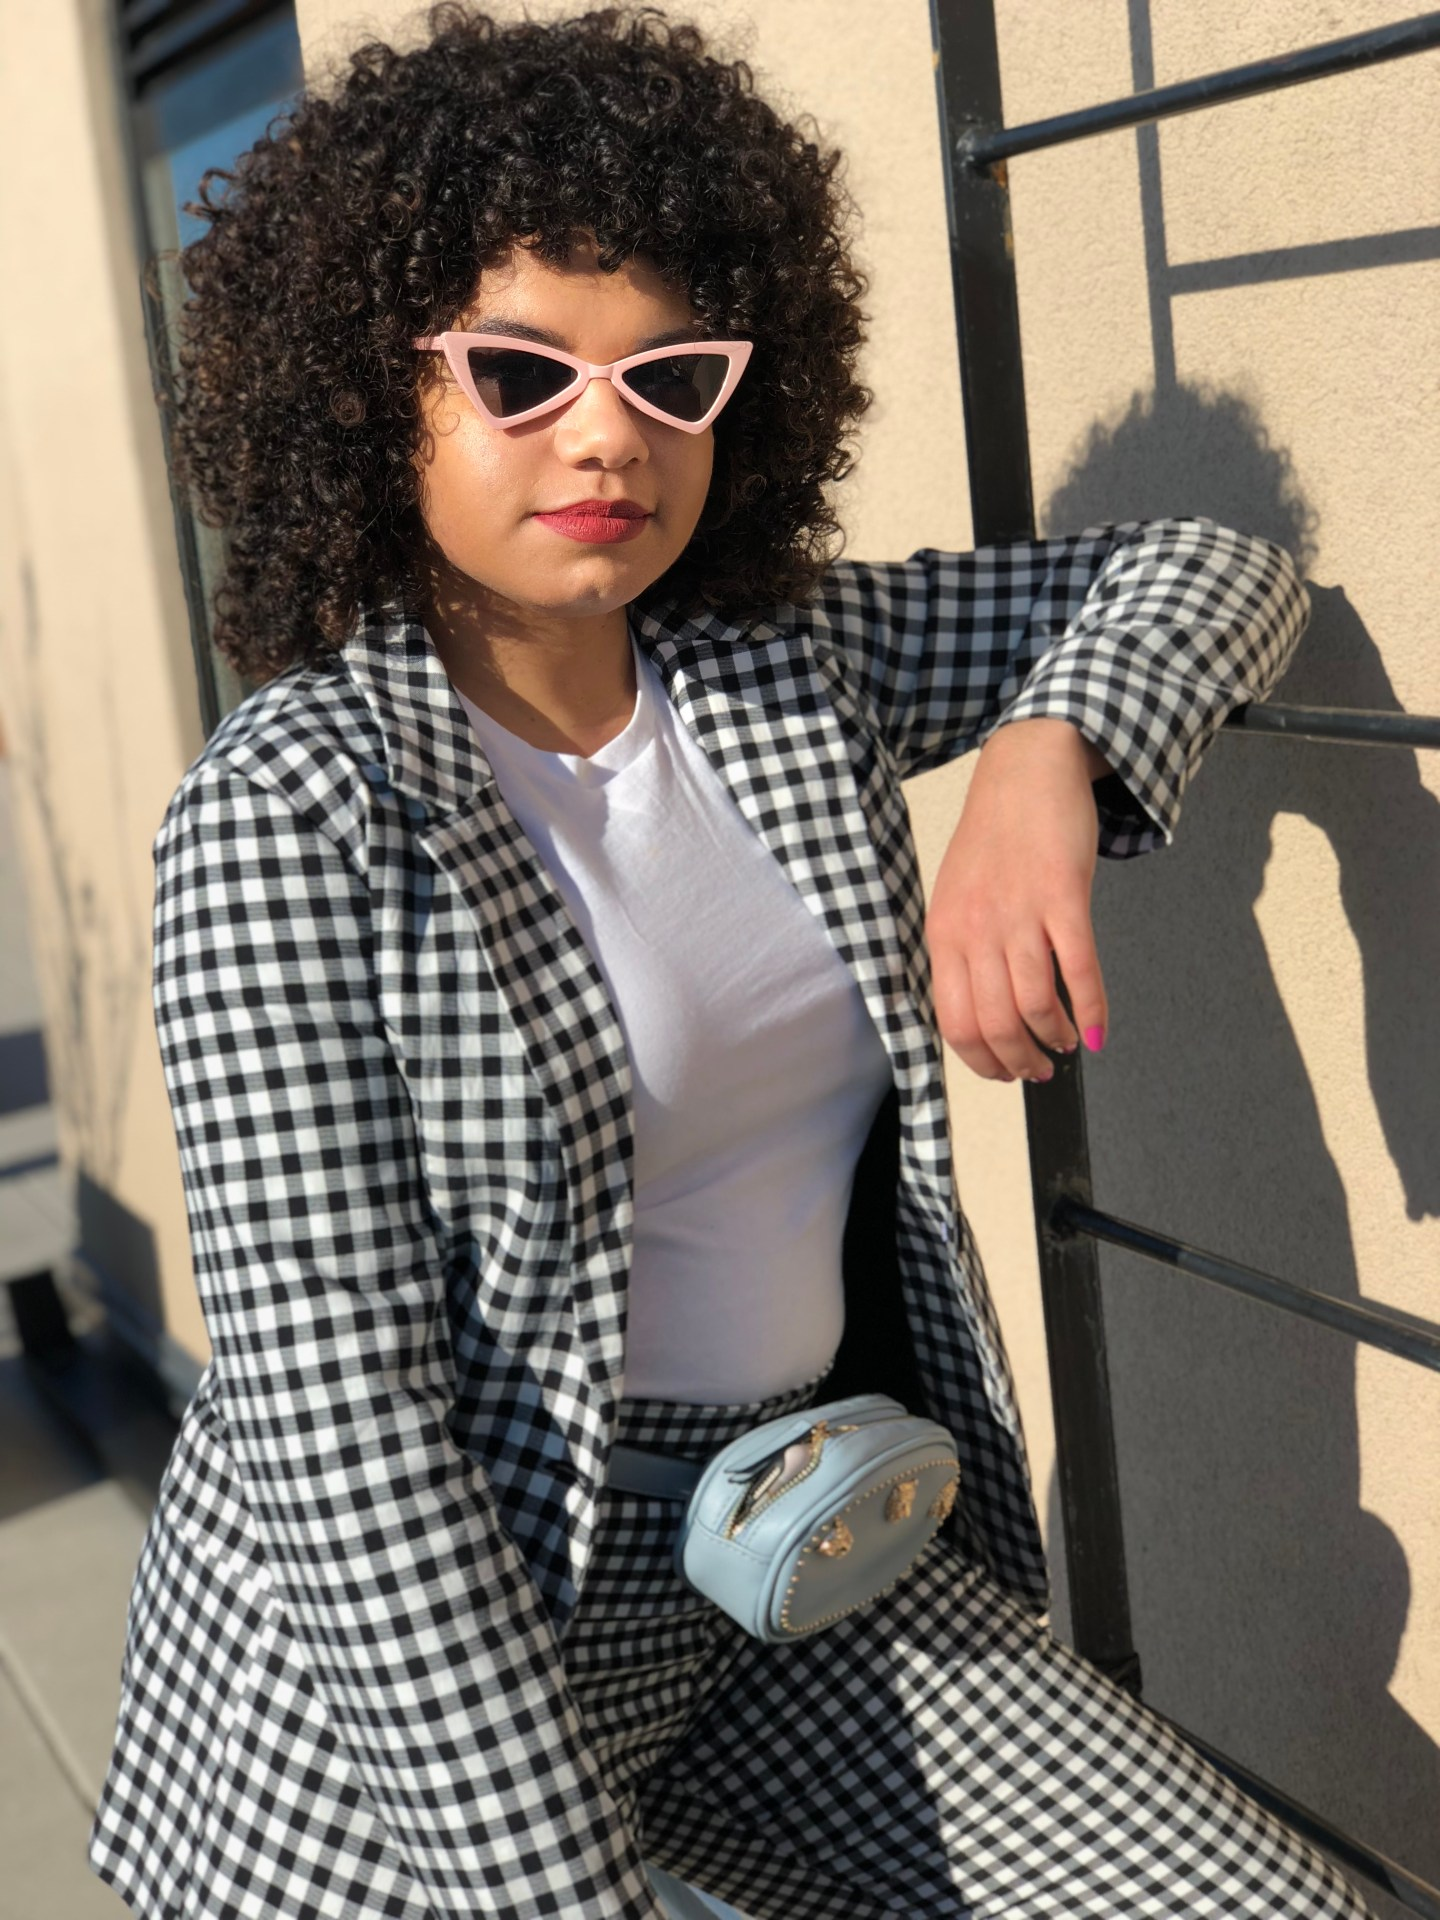 Gingham for Spring? Groundbreaking.